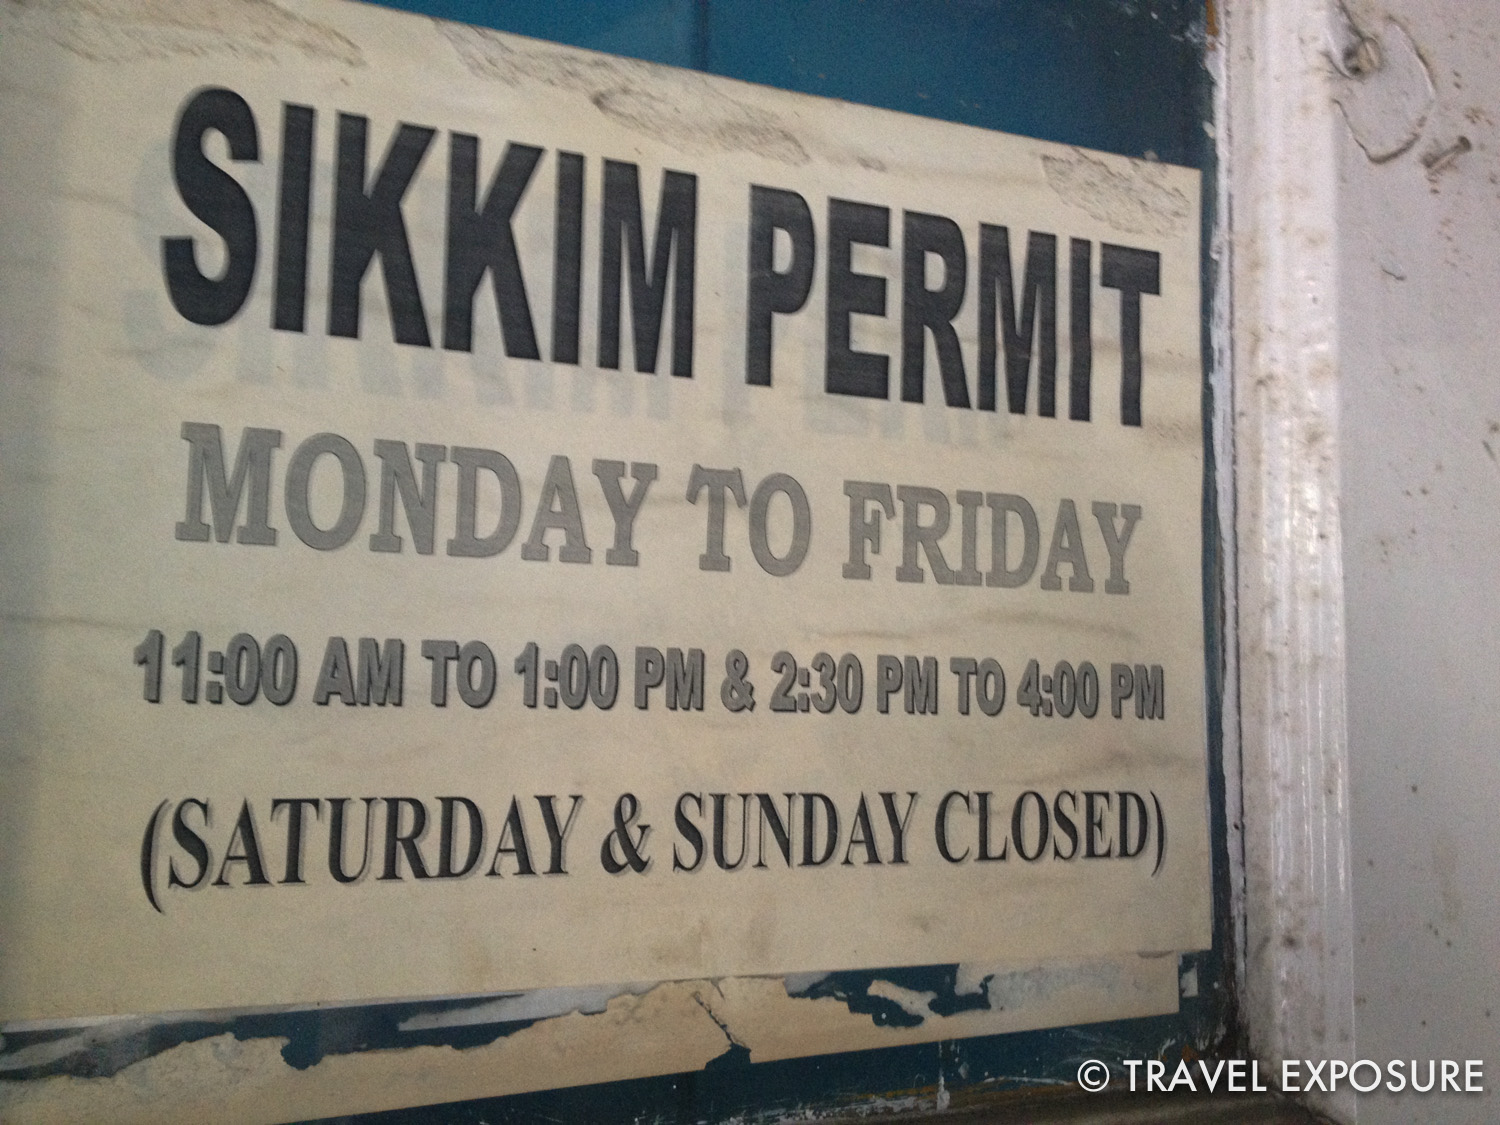 It was an entire ordeal to get our permit to visit Sikkim that included a 30 minute walk from where we submitted our paperwork to getting our stamp at this place. Note the convenient hours it's open.